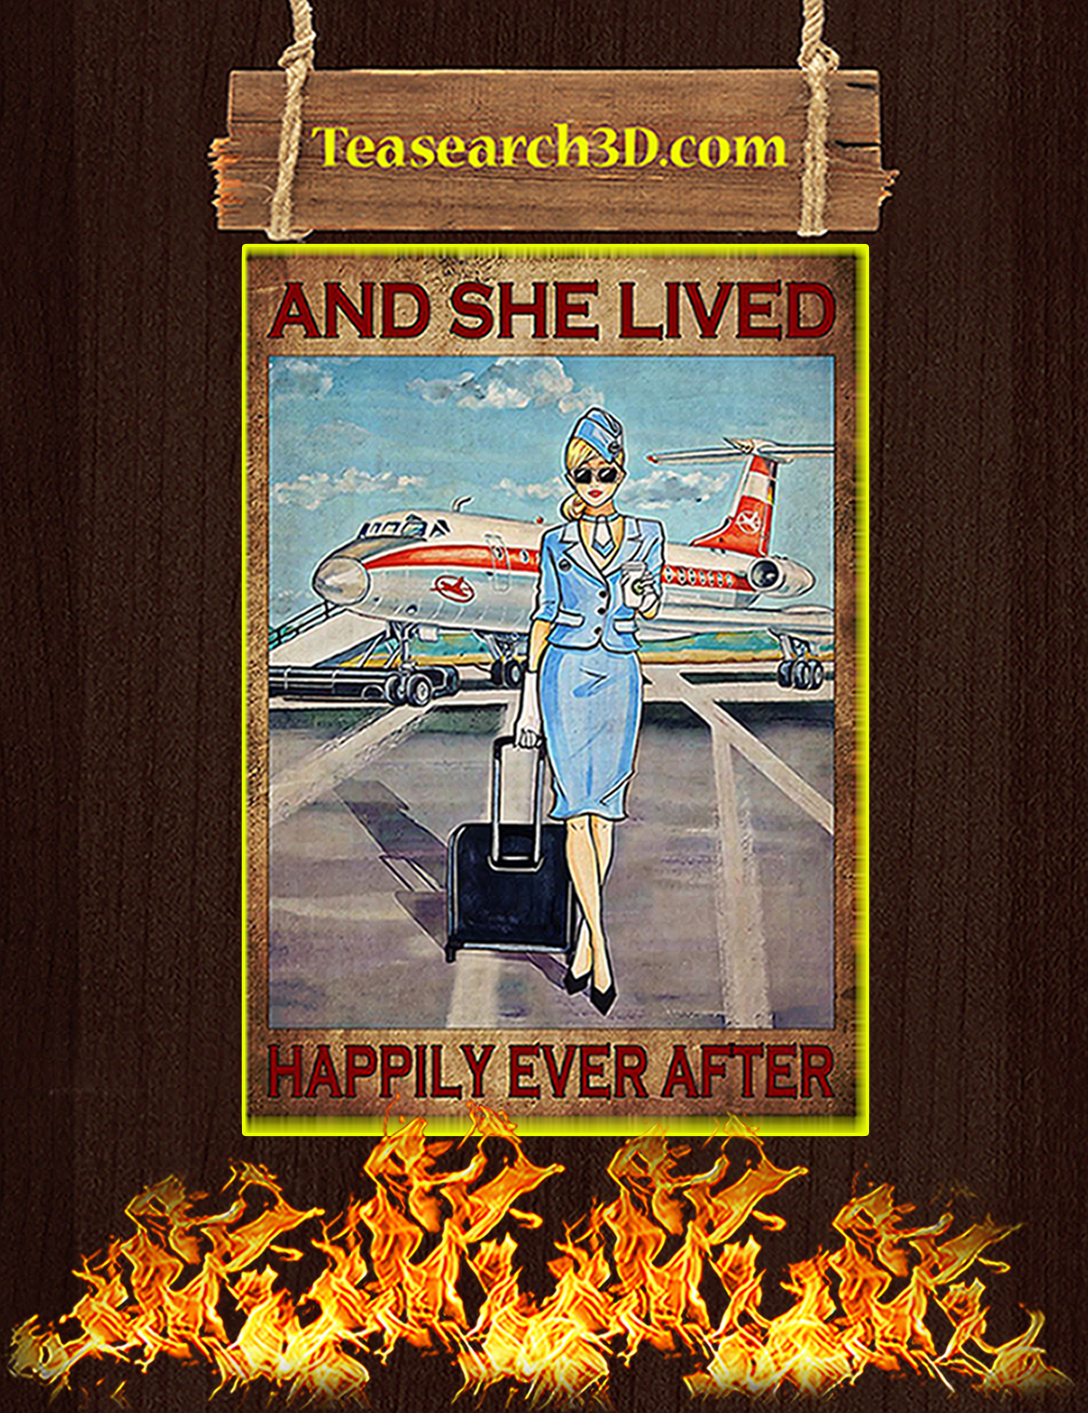 Flight attendant and she lived happily ever after poster A2